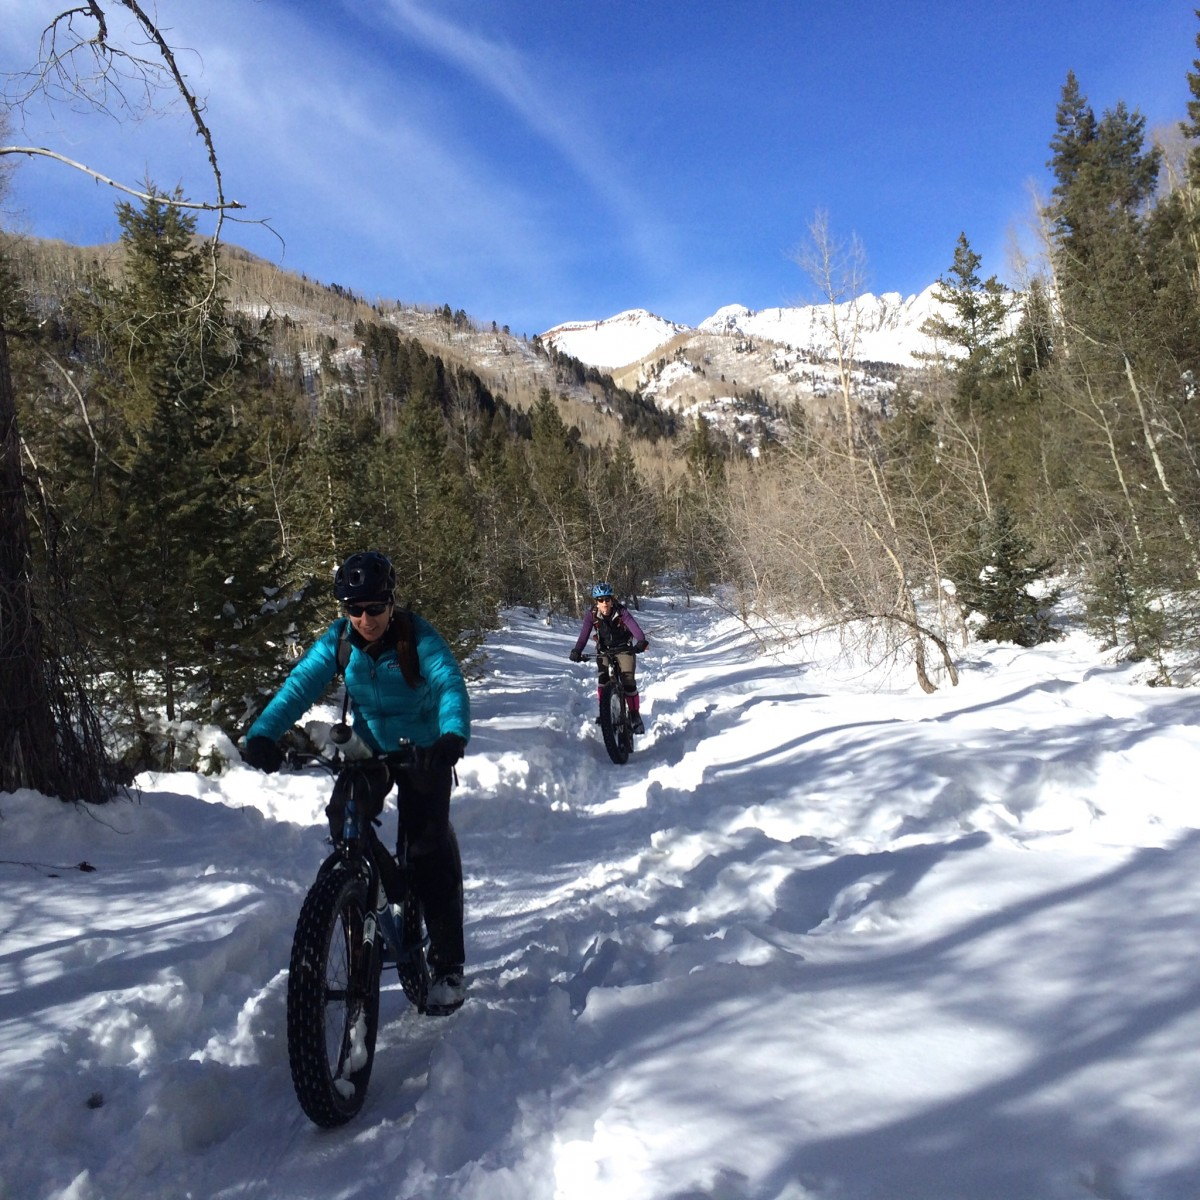 Snow bikers of all abilities enjoy La Plata Canyon's frozen goodness.